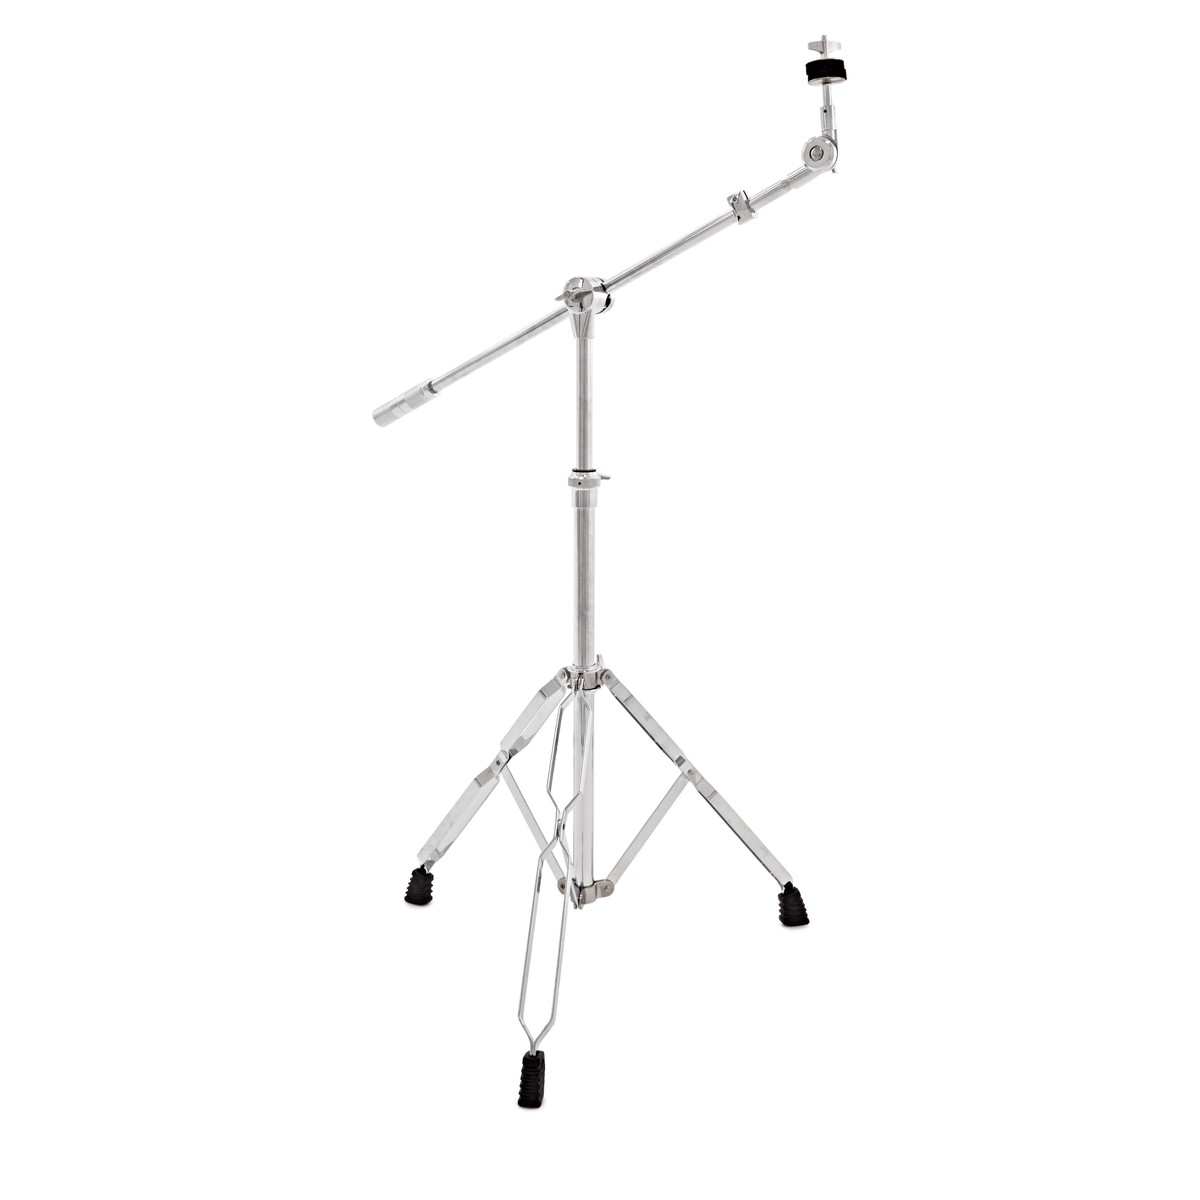 Image of Cymbal Boom Stand with Counter Weight by Gear4music